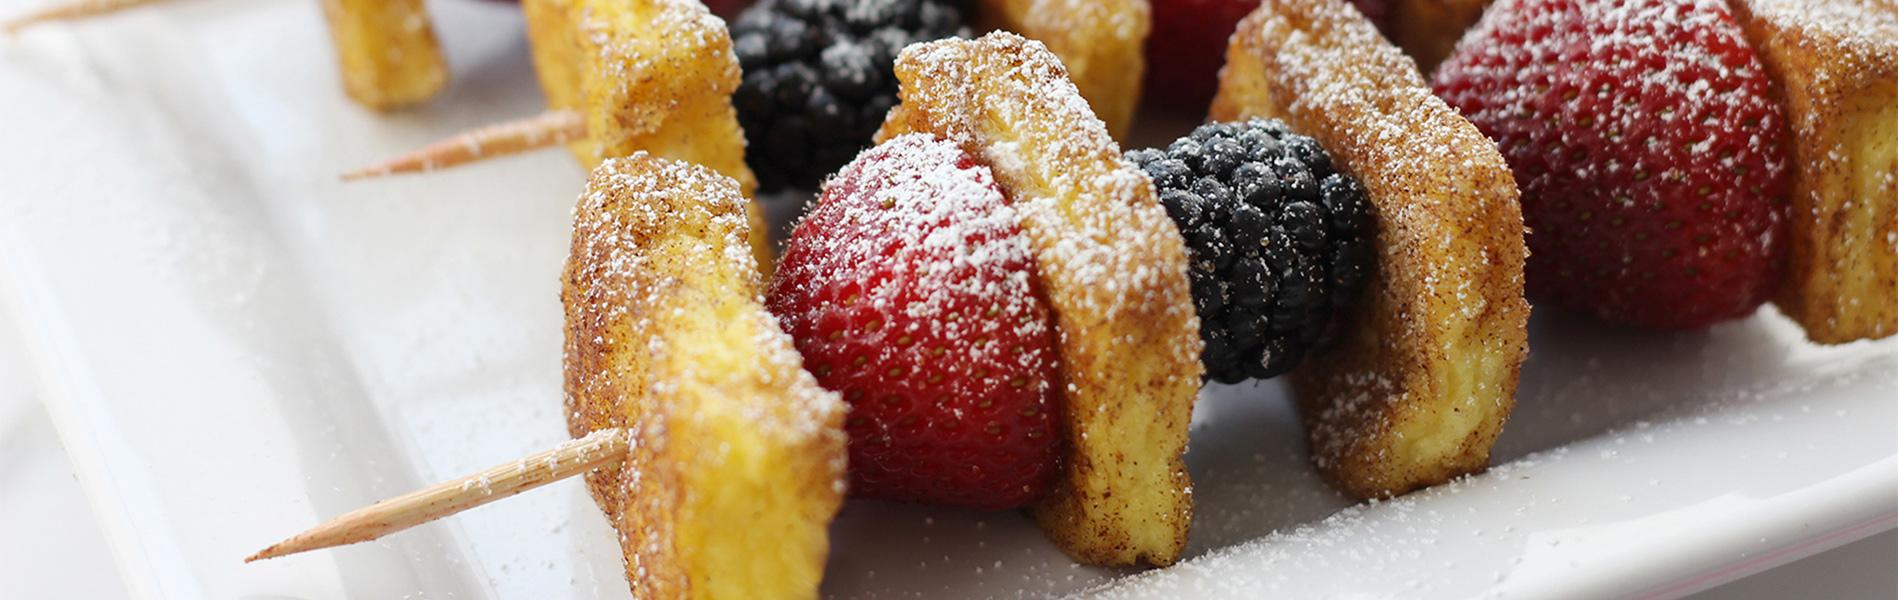 French Toast and Fruit on skewers